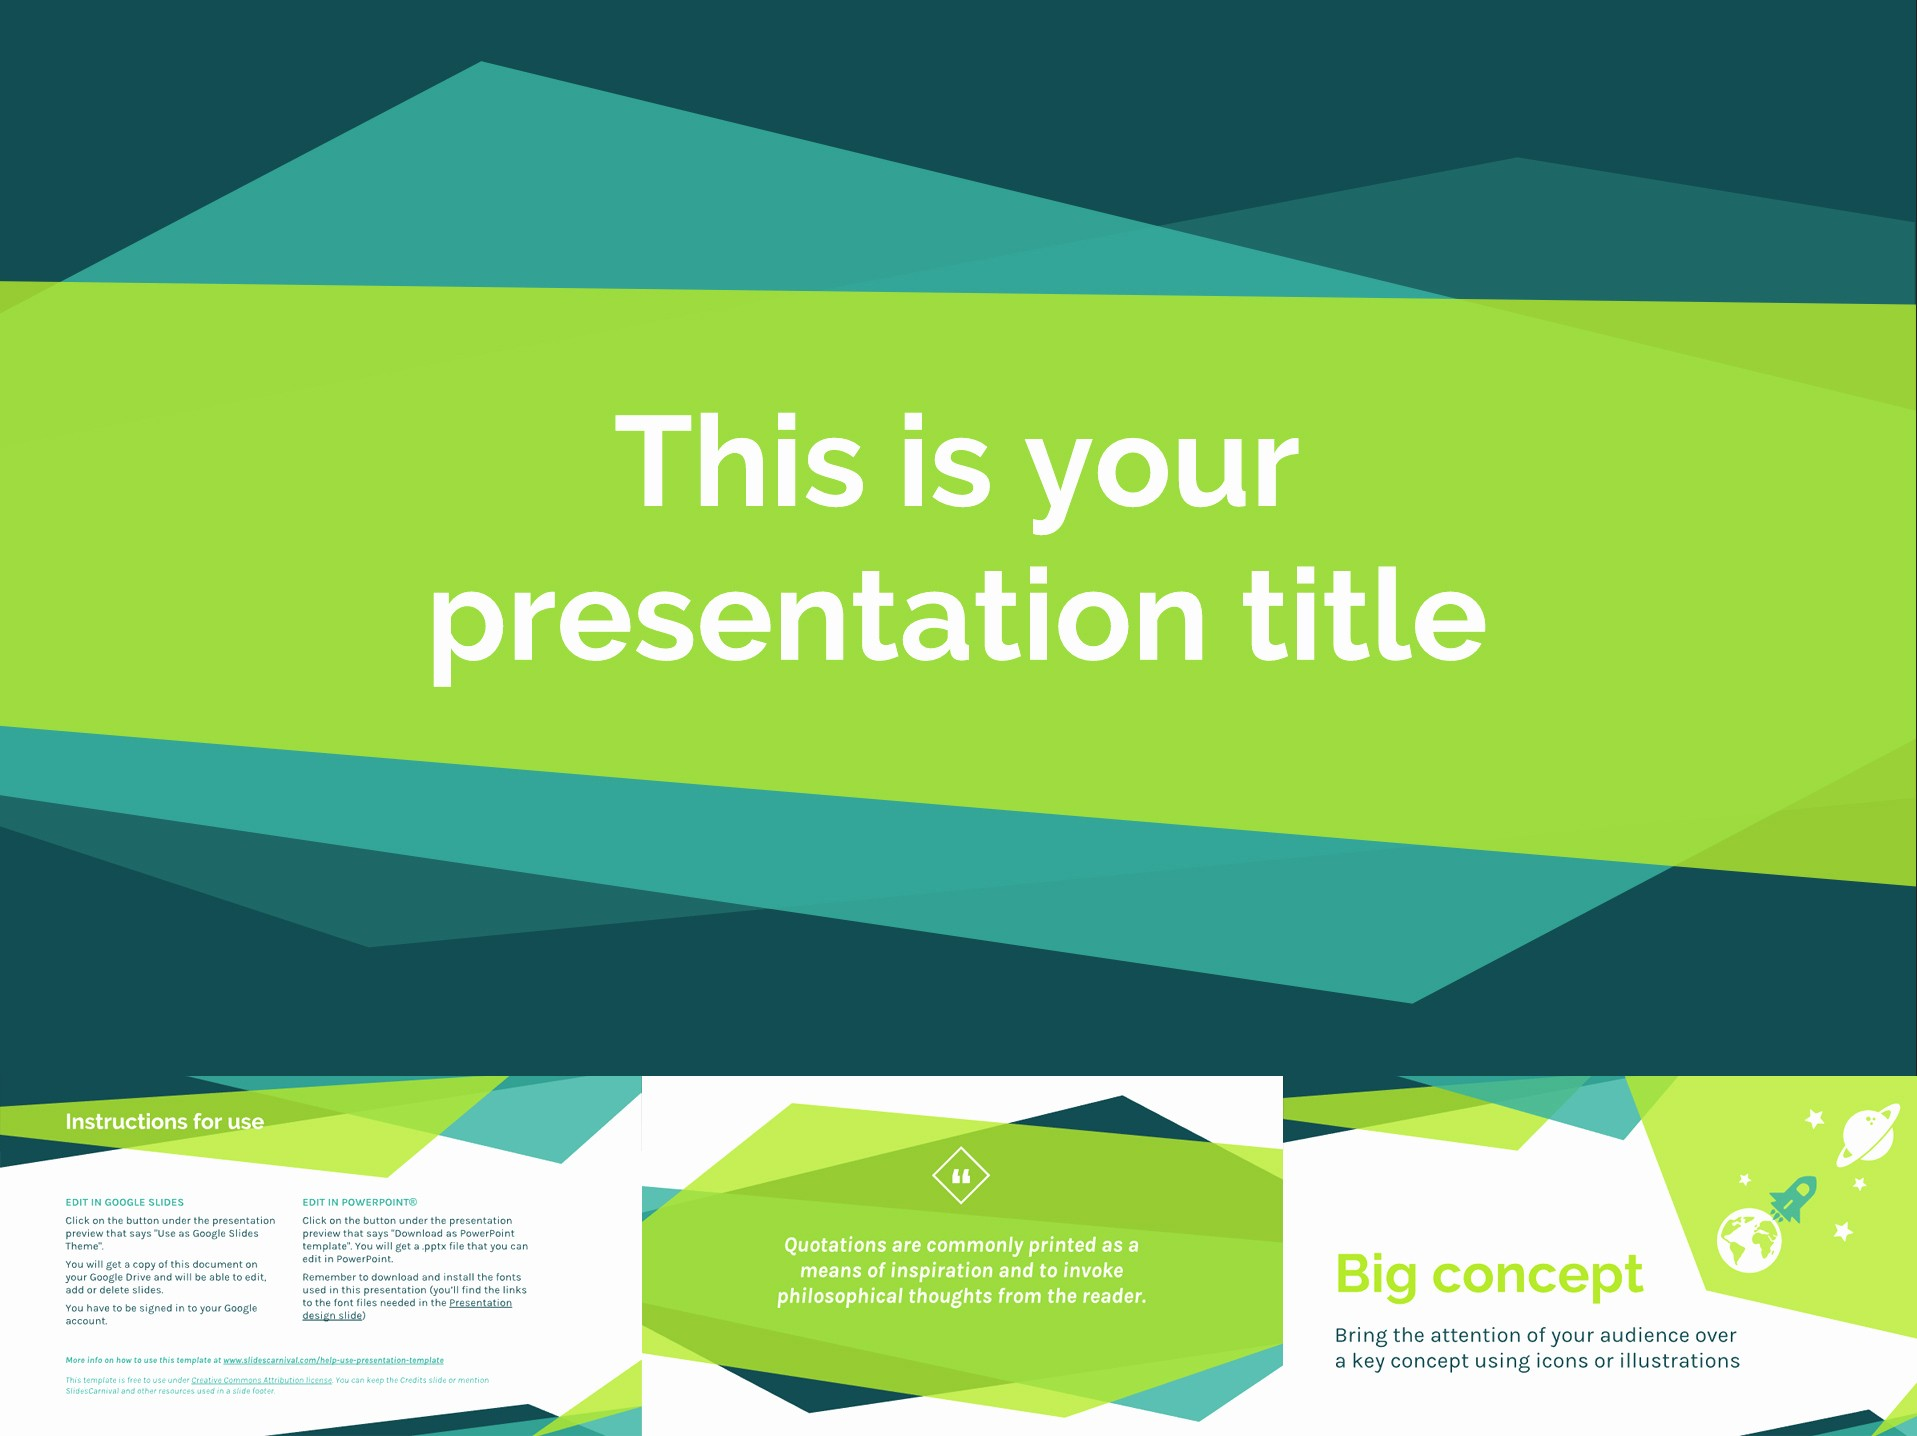 Powerpoint Presentation Slides Free Download Inspirational 30 Free Google Slides Templates for Your Next Presentation